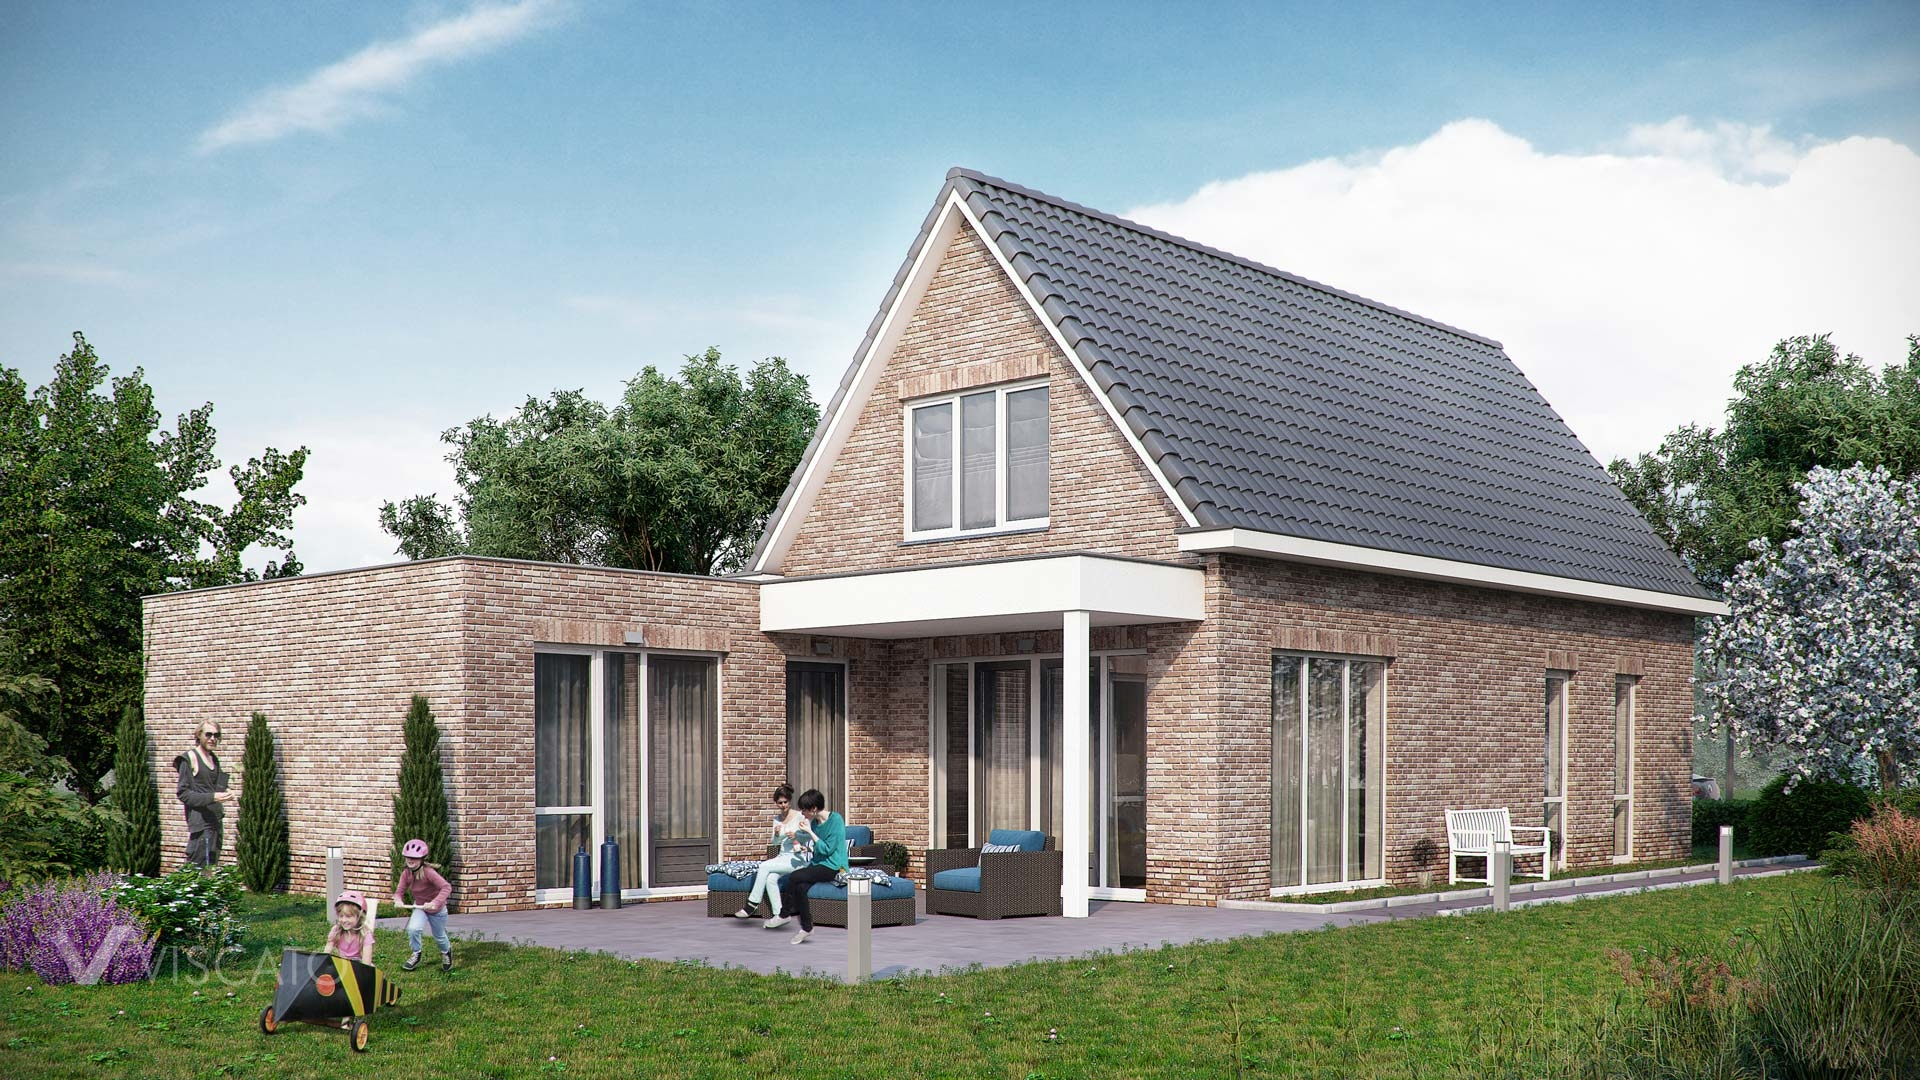 3d Visualization of Brick house with terrace- garden view